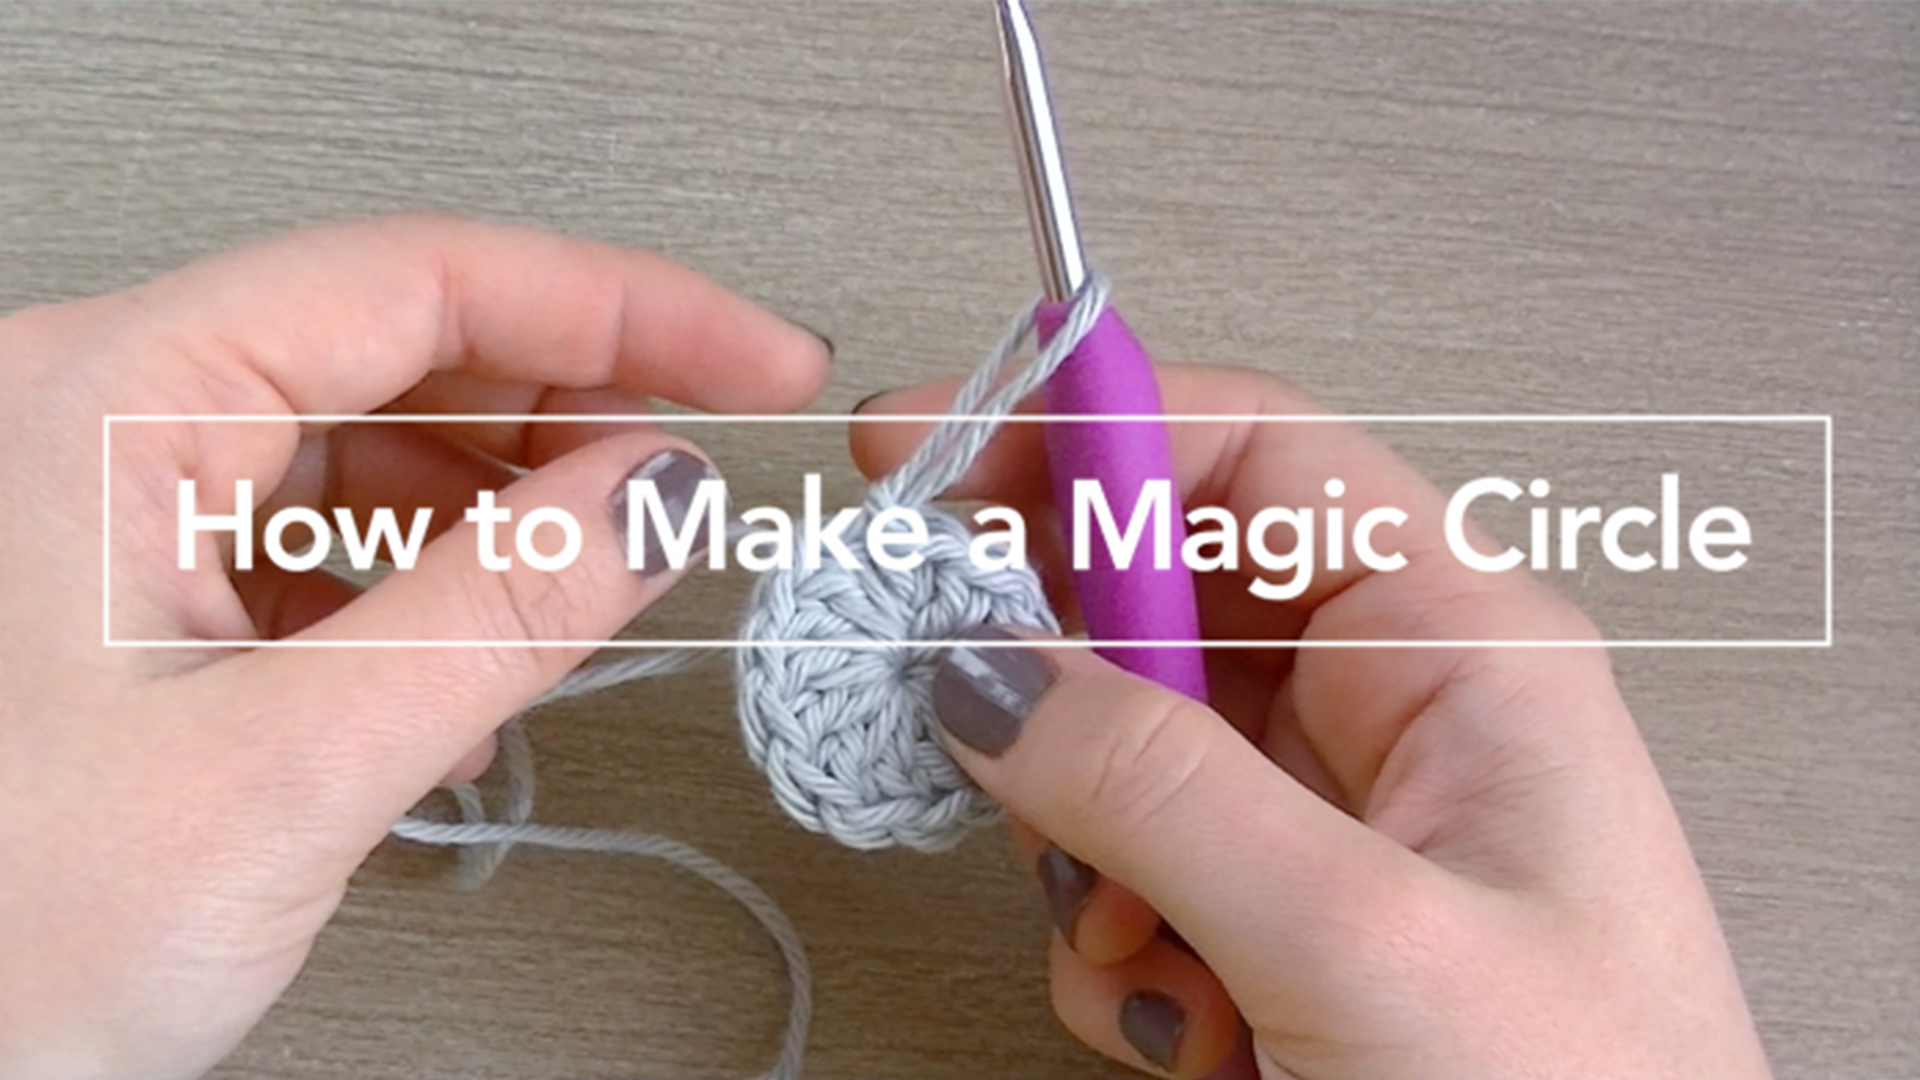 How to Crochet a Magic Circle  |  Video Tutorial by Little Monkeys Crochet